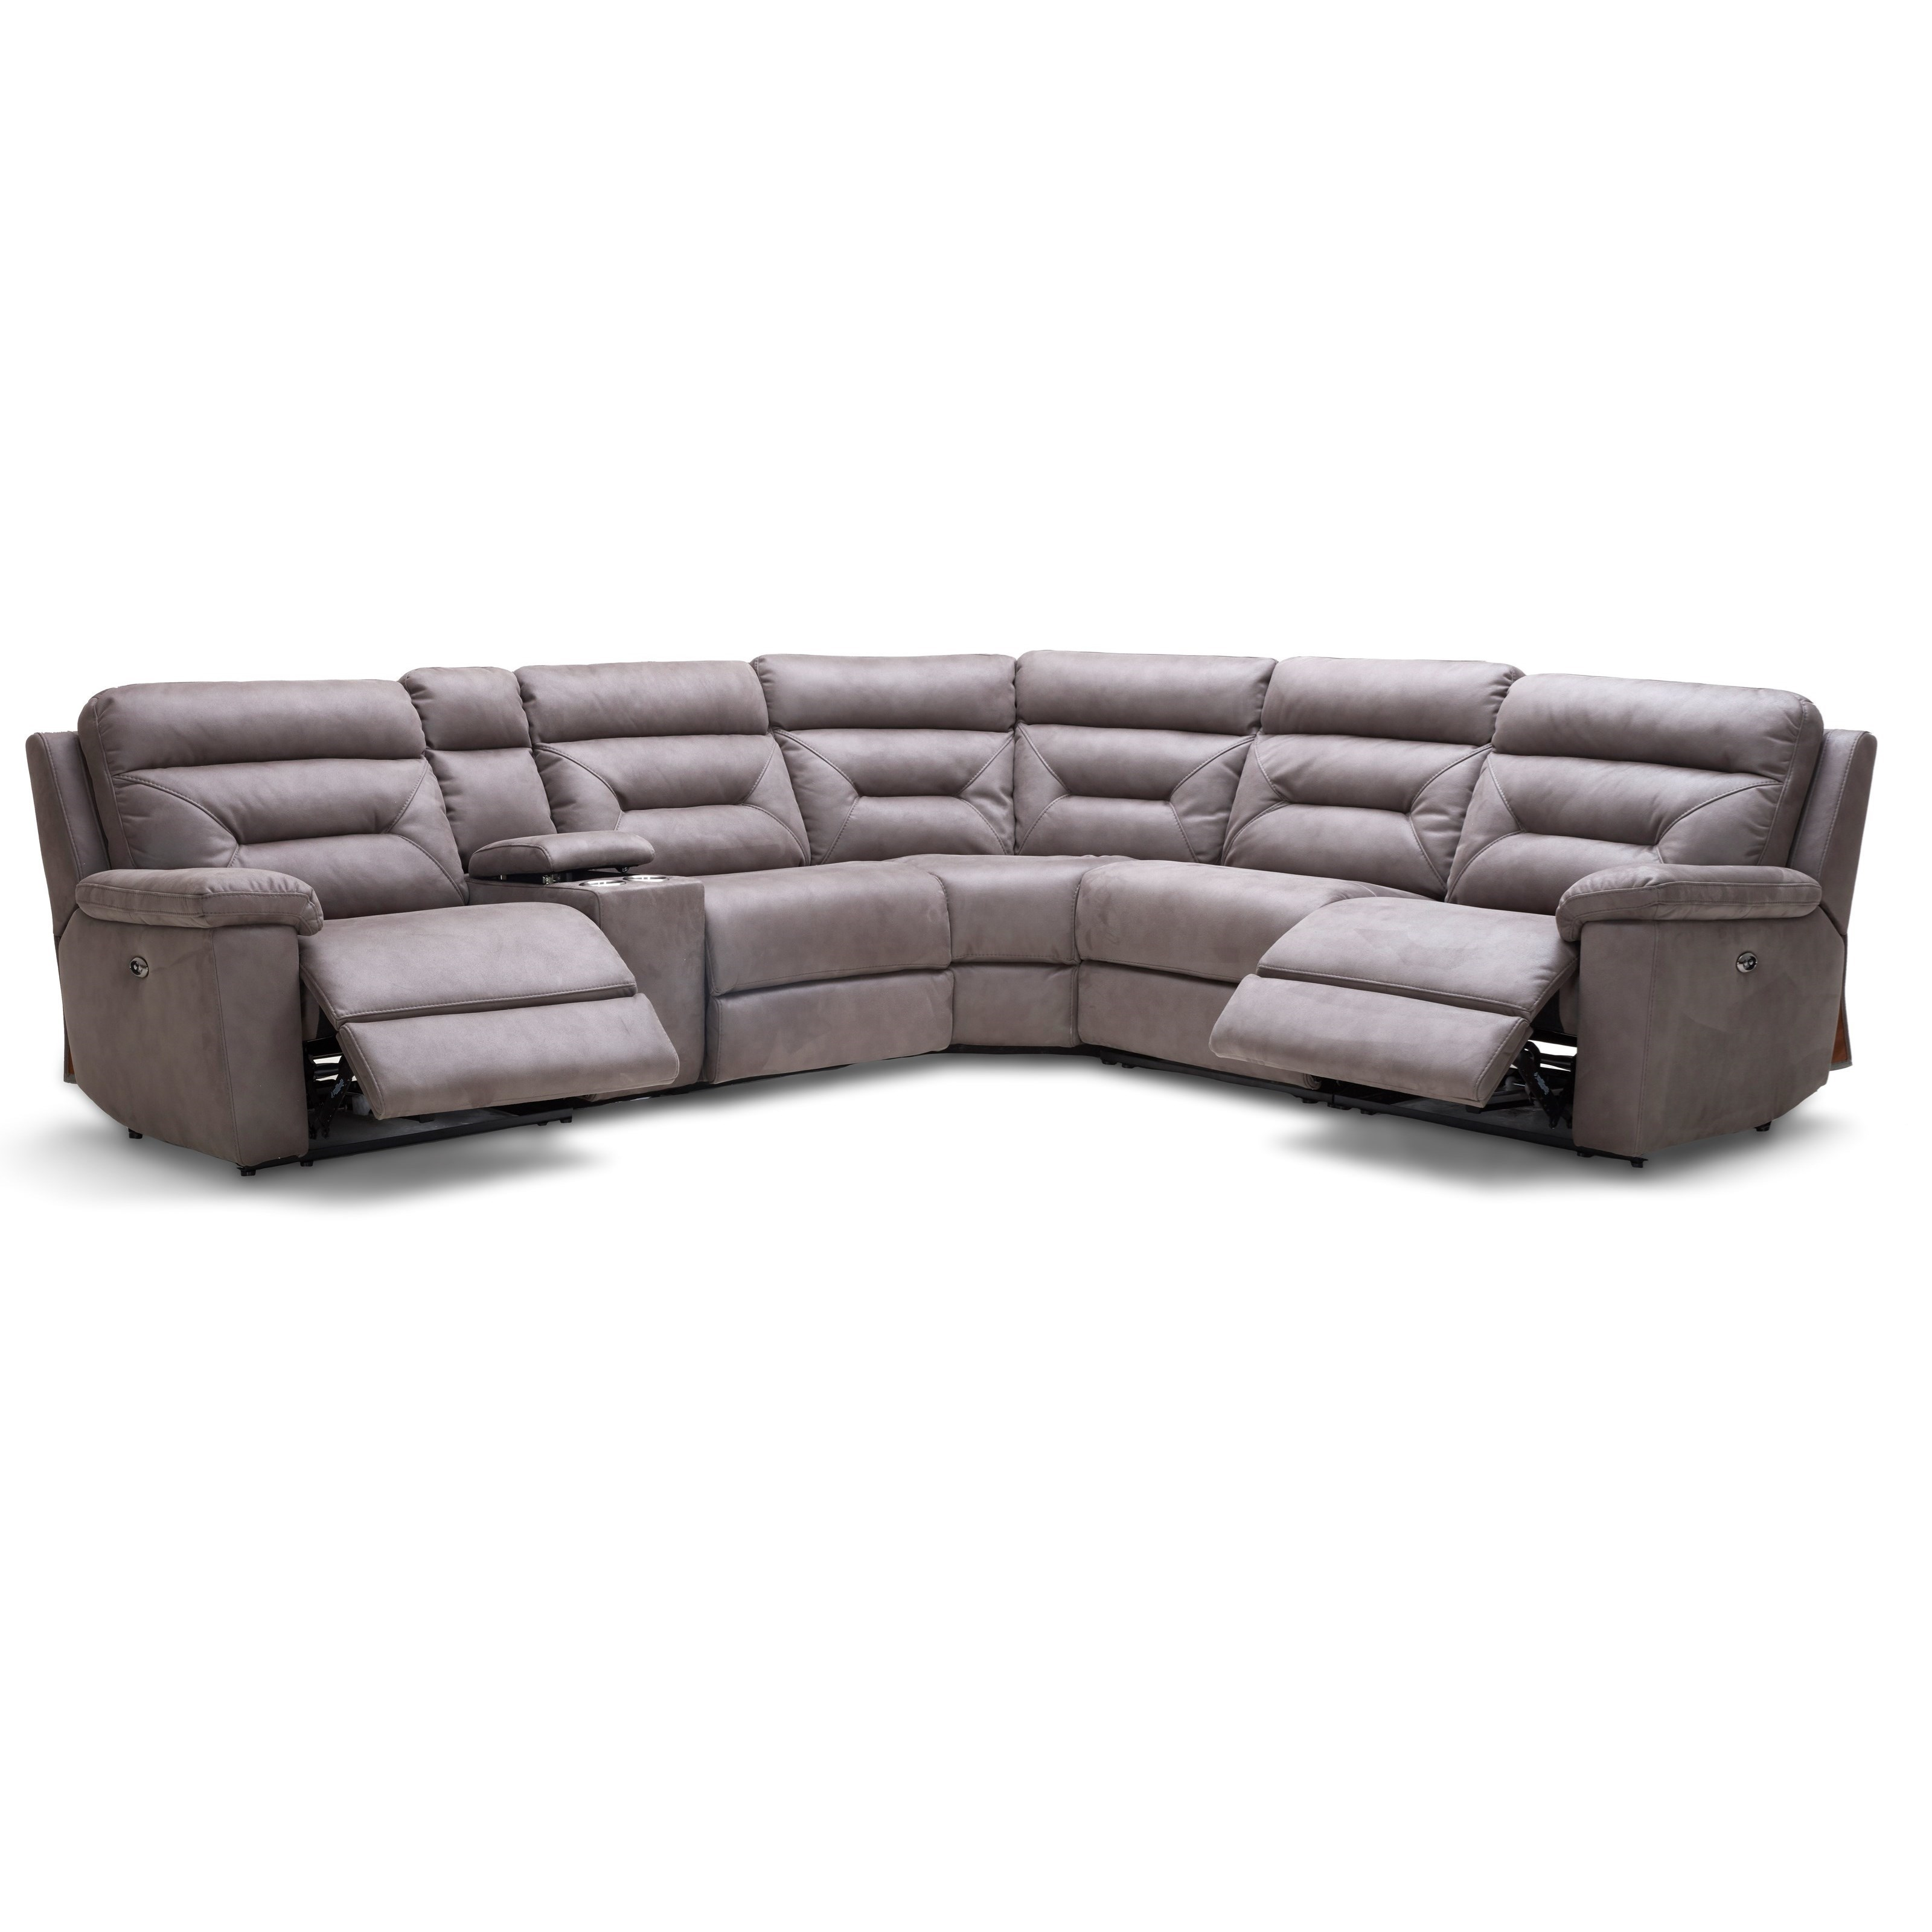 kuka home km012 six piece power reclining sectional sofa with rh wilsonhomefurnishings com